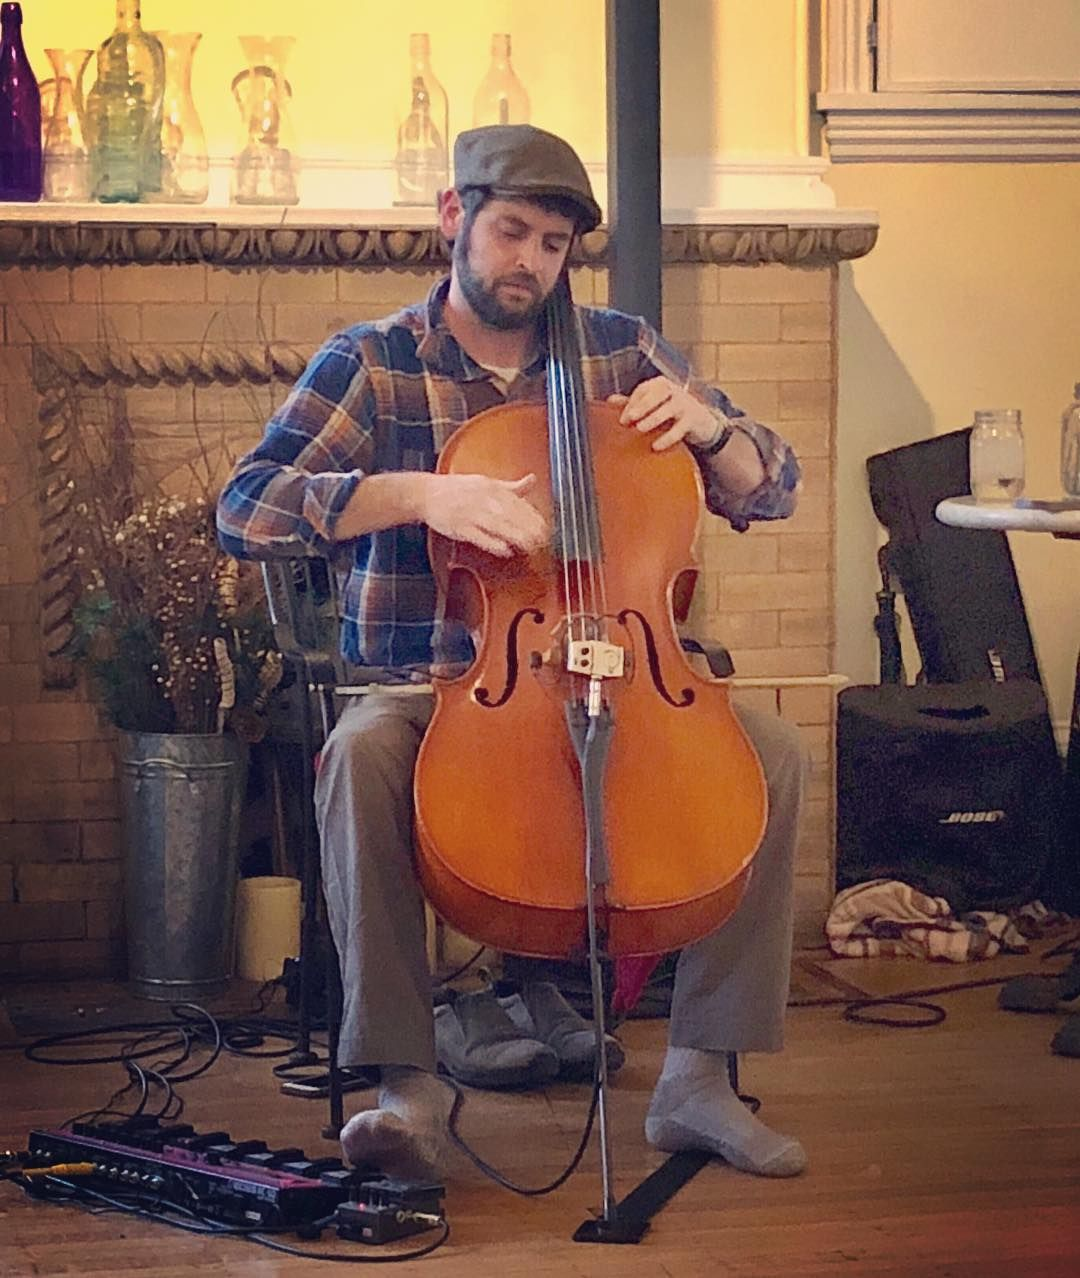 wbw to doin that cello thang at @caffegallerianj a few weeks